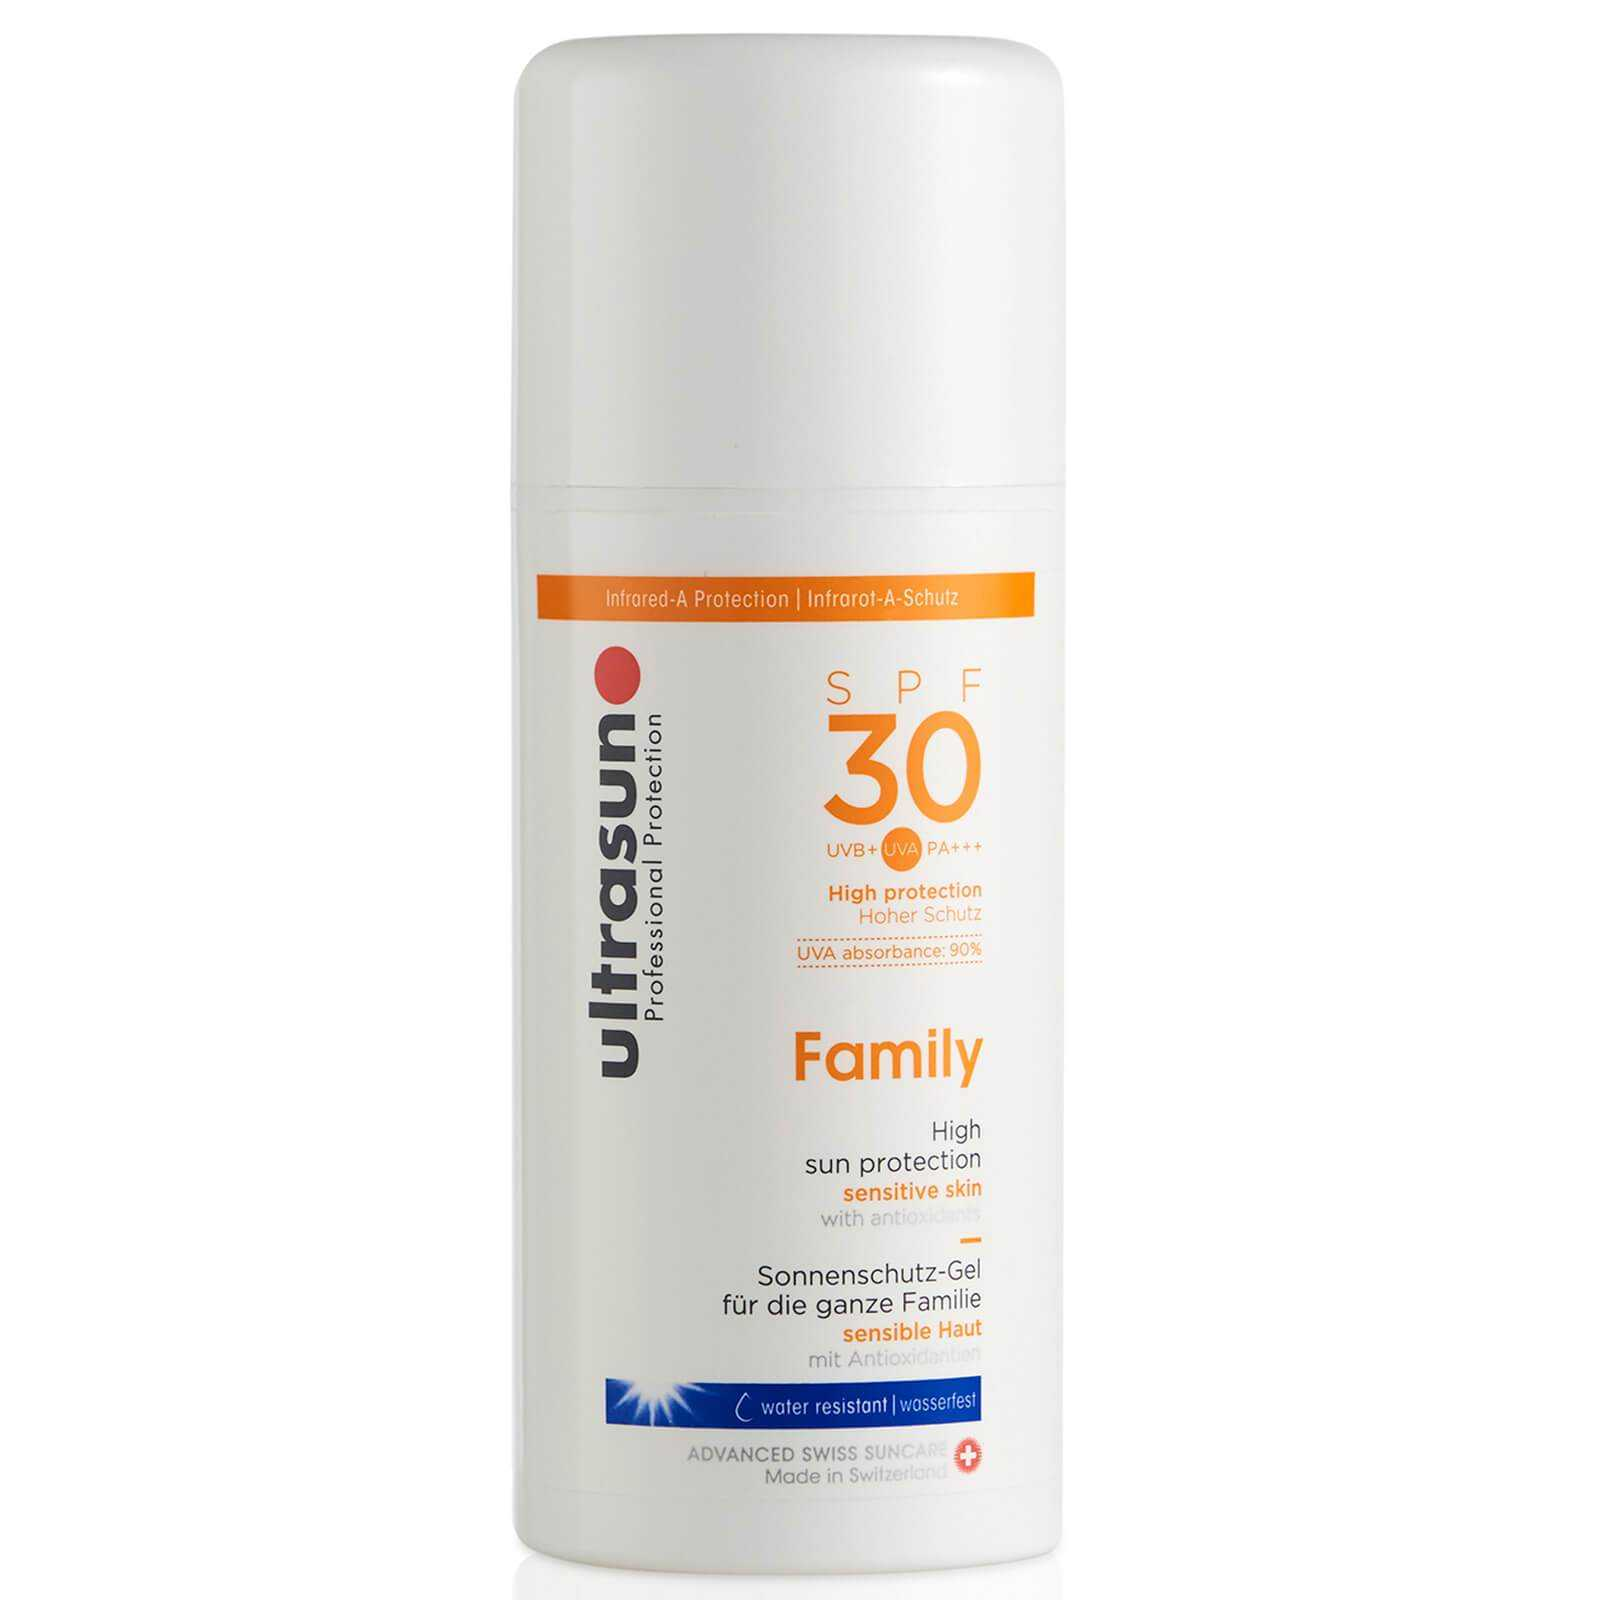 Ultrasun SPF 30 Family Sun Lotion (100ml) Ultrasun